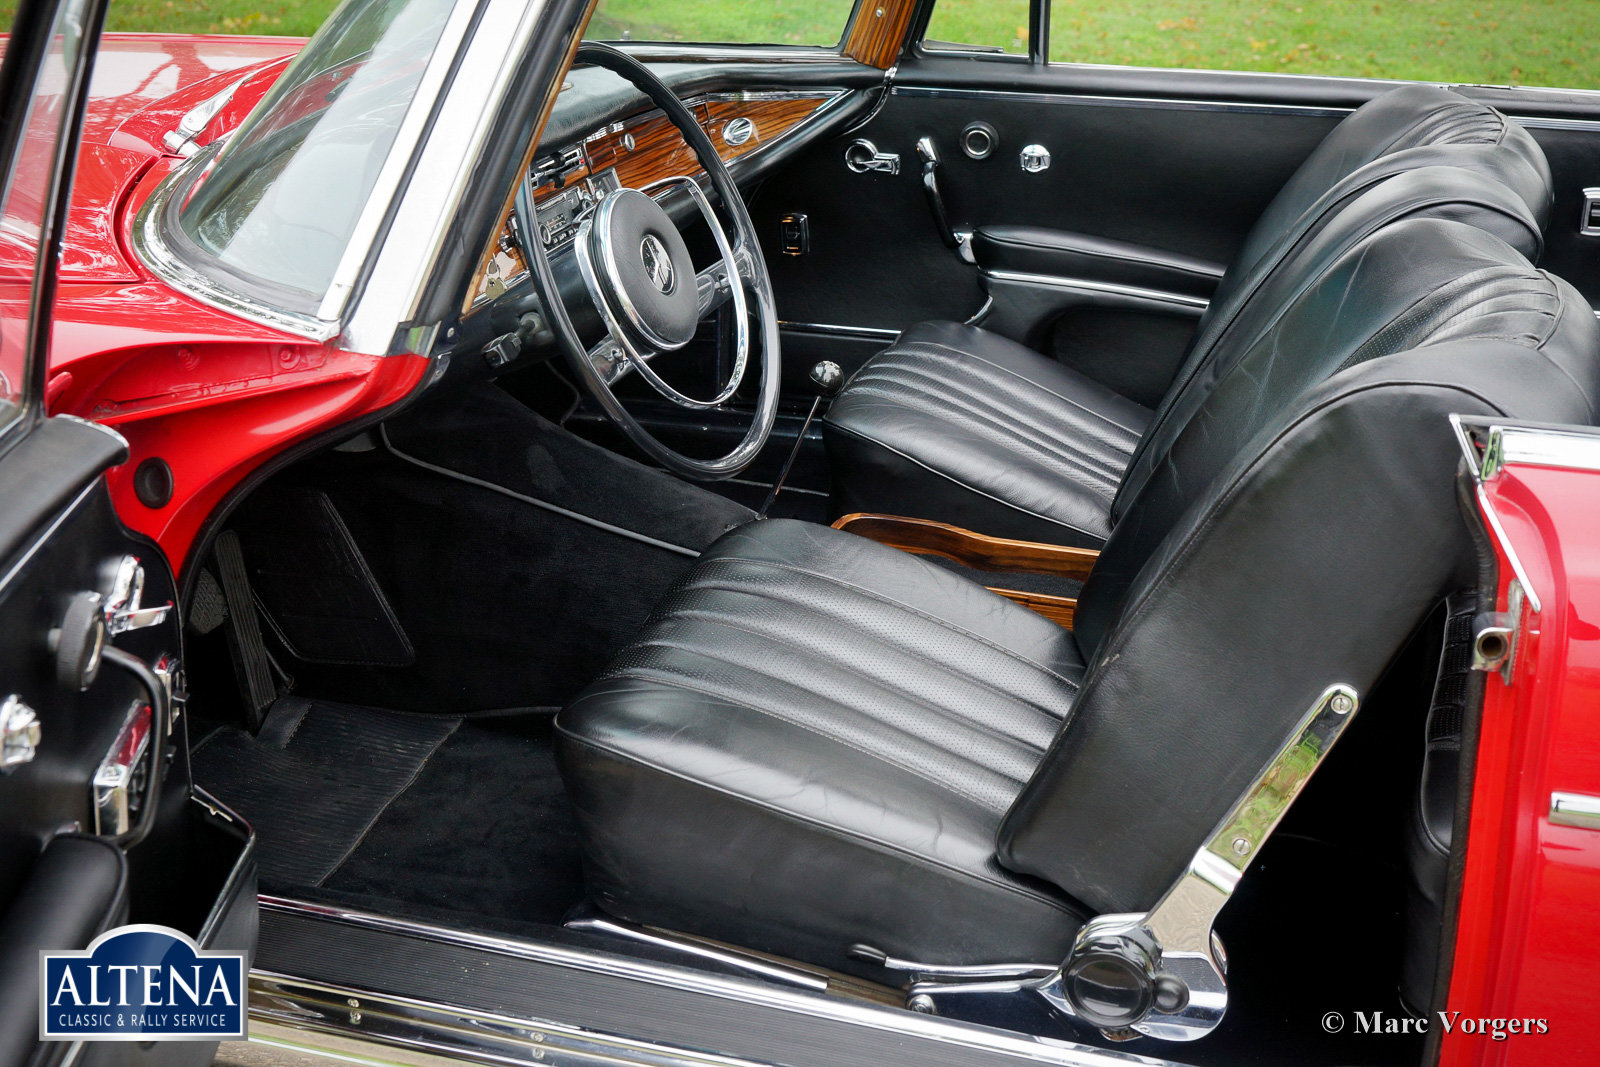 Mercedes 300SE Cabriolet, 1966 For Sale (picture 2 of 6)